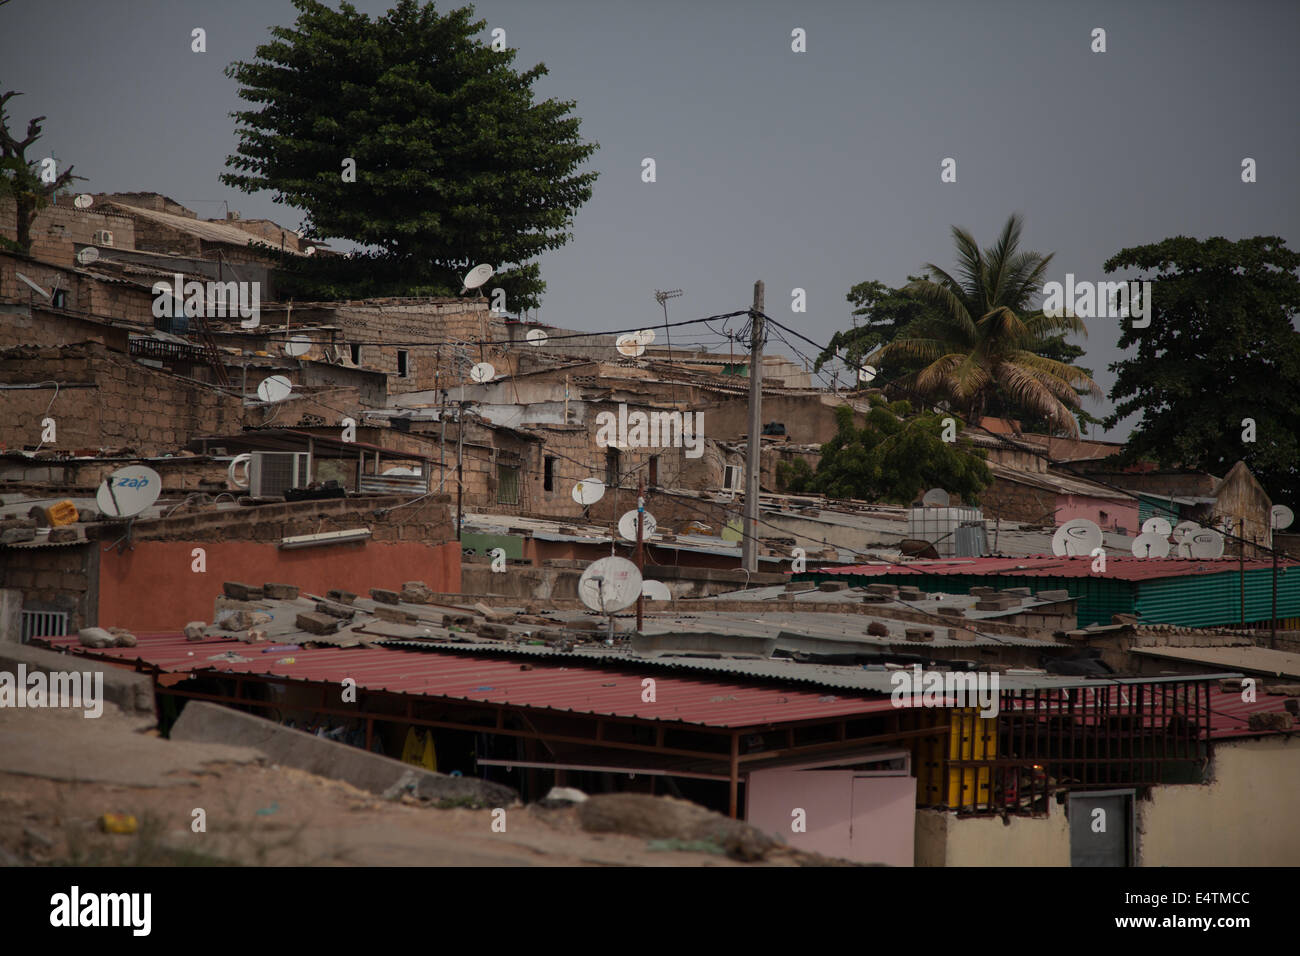 Angola, Luanda, city life, Africa buildings in city - Stock Image